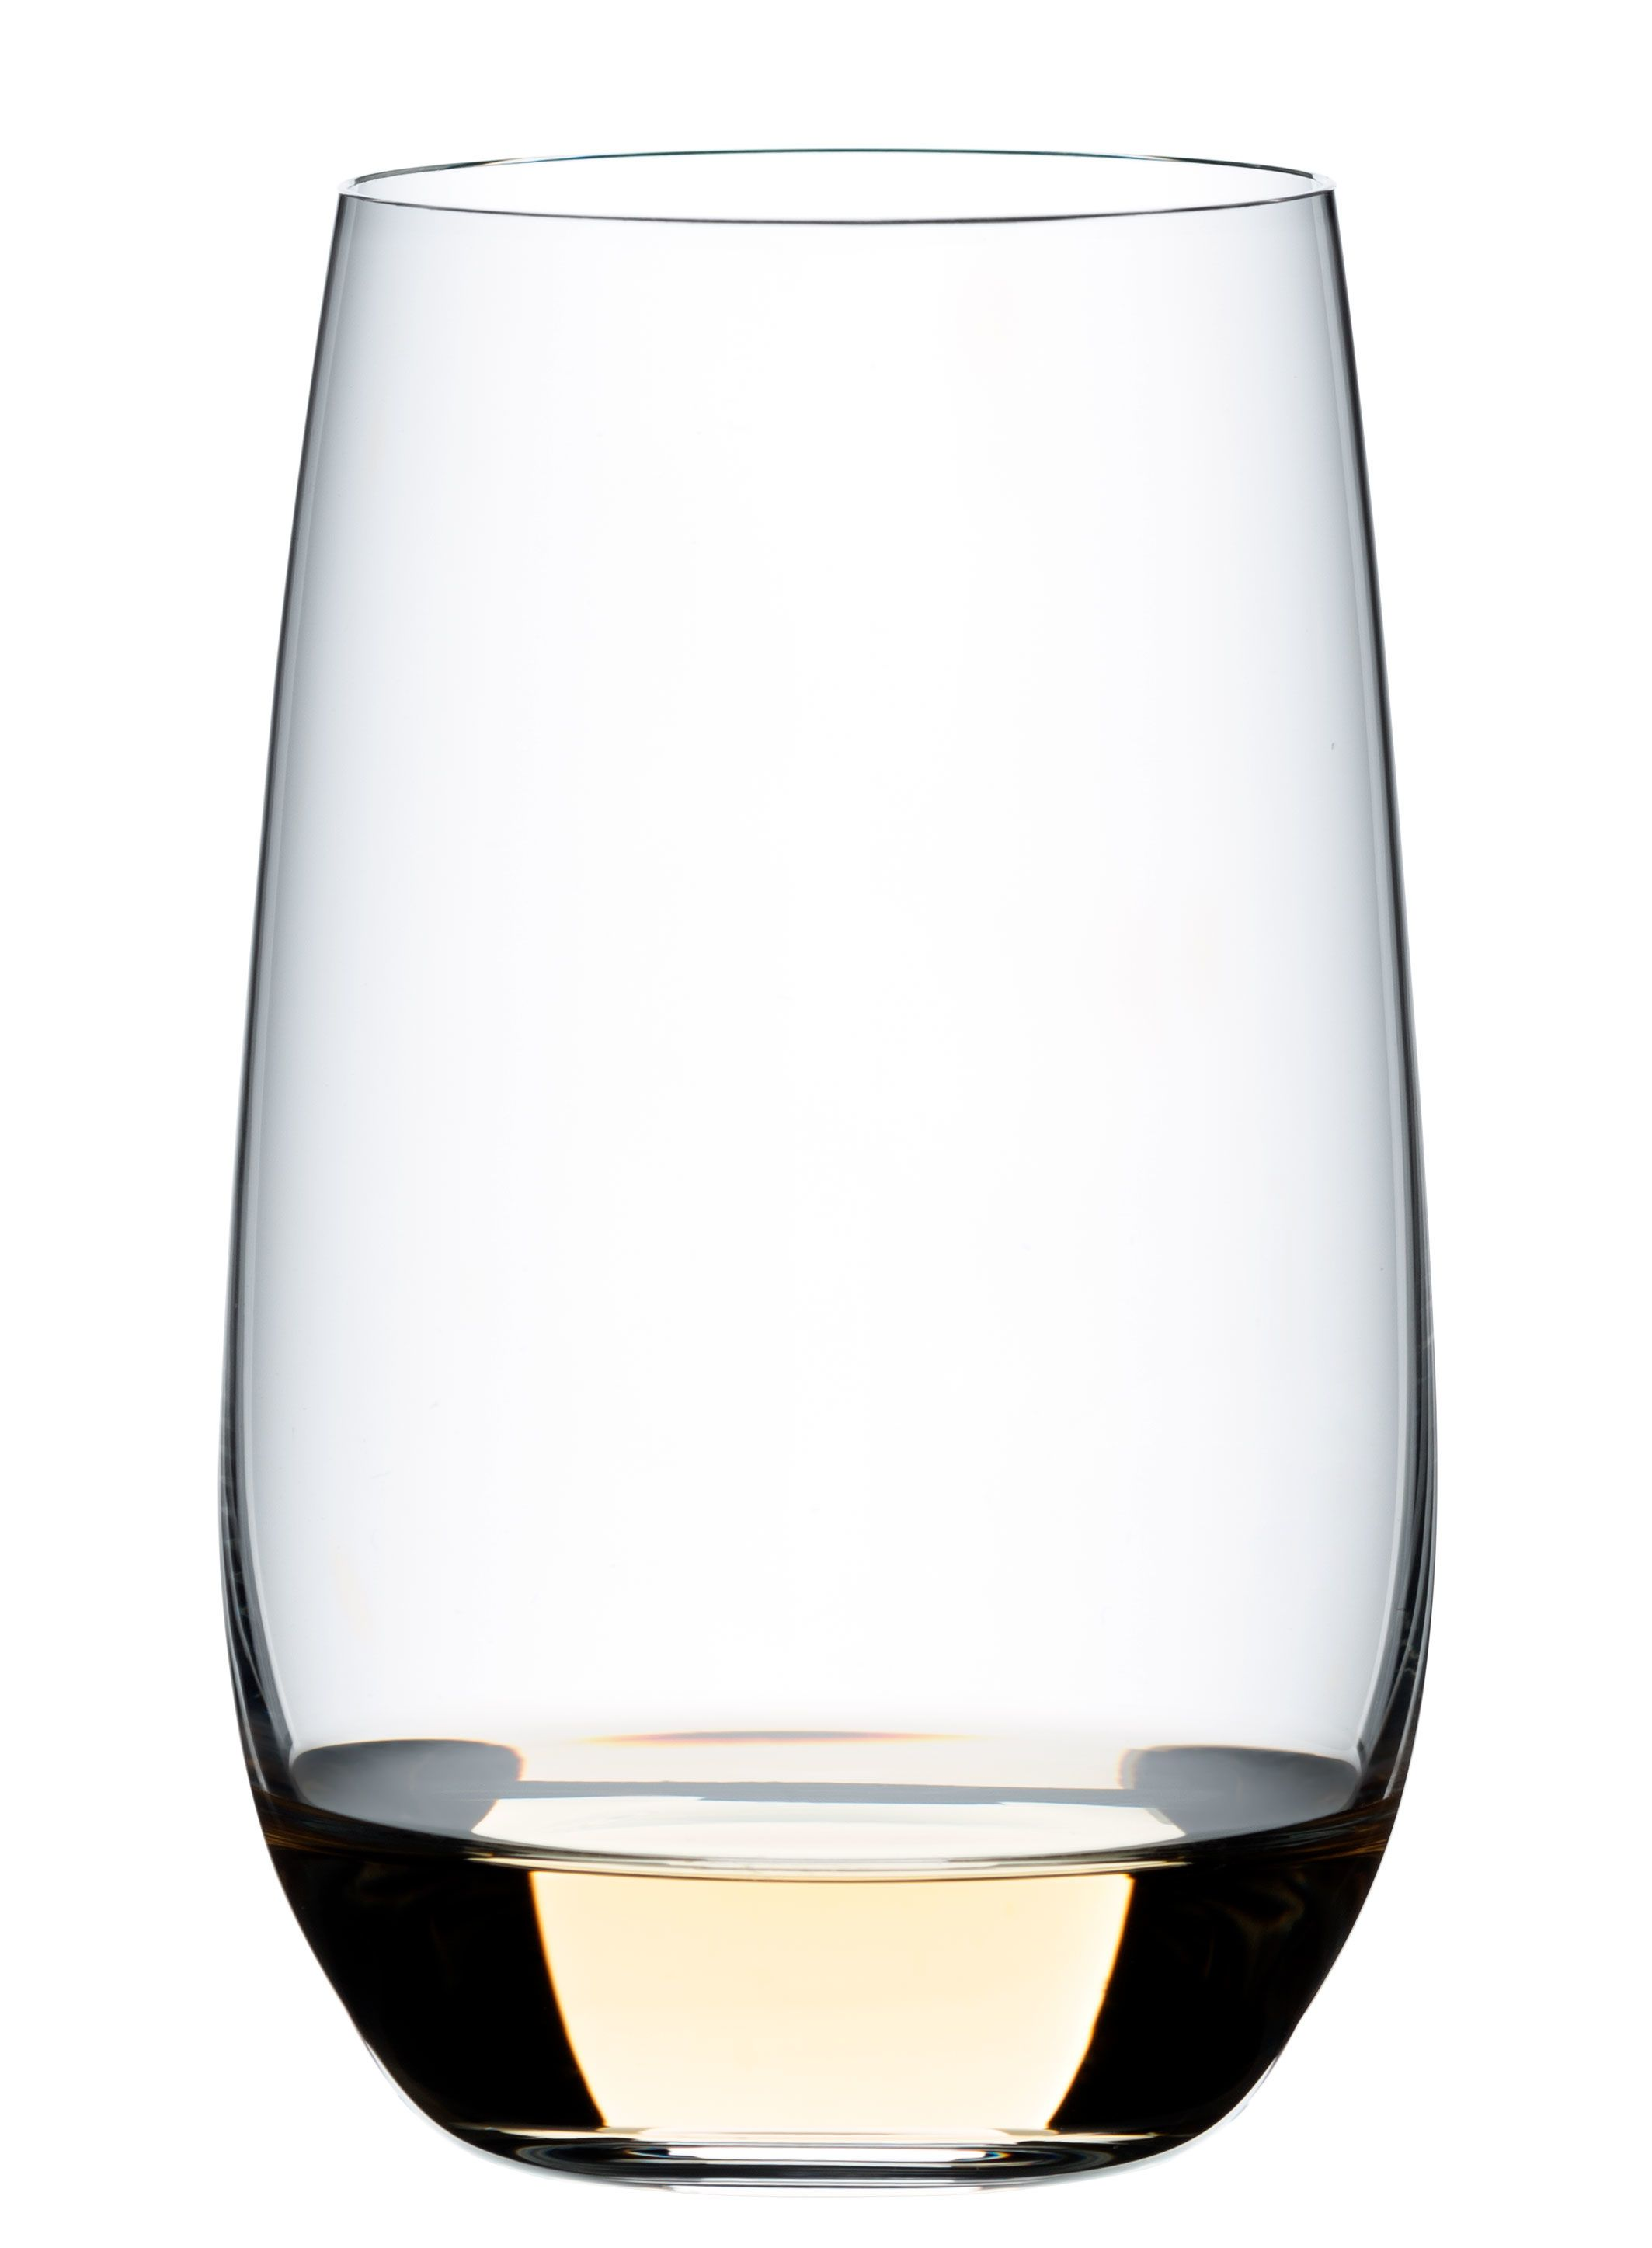 Riedel O Tequila Glass (Set of 2)  Gift Product Image